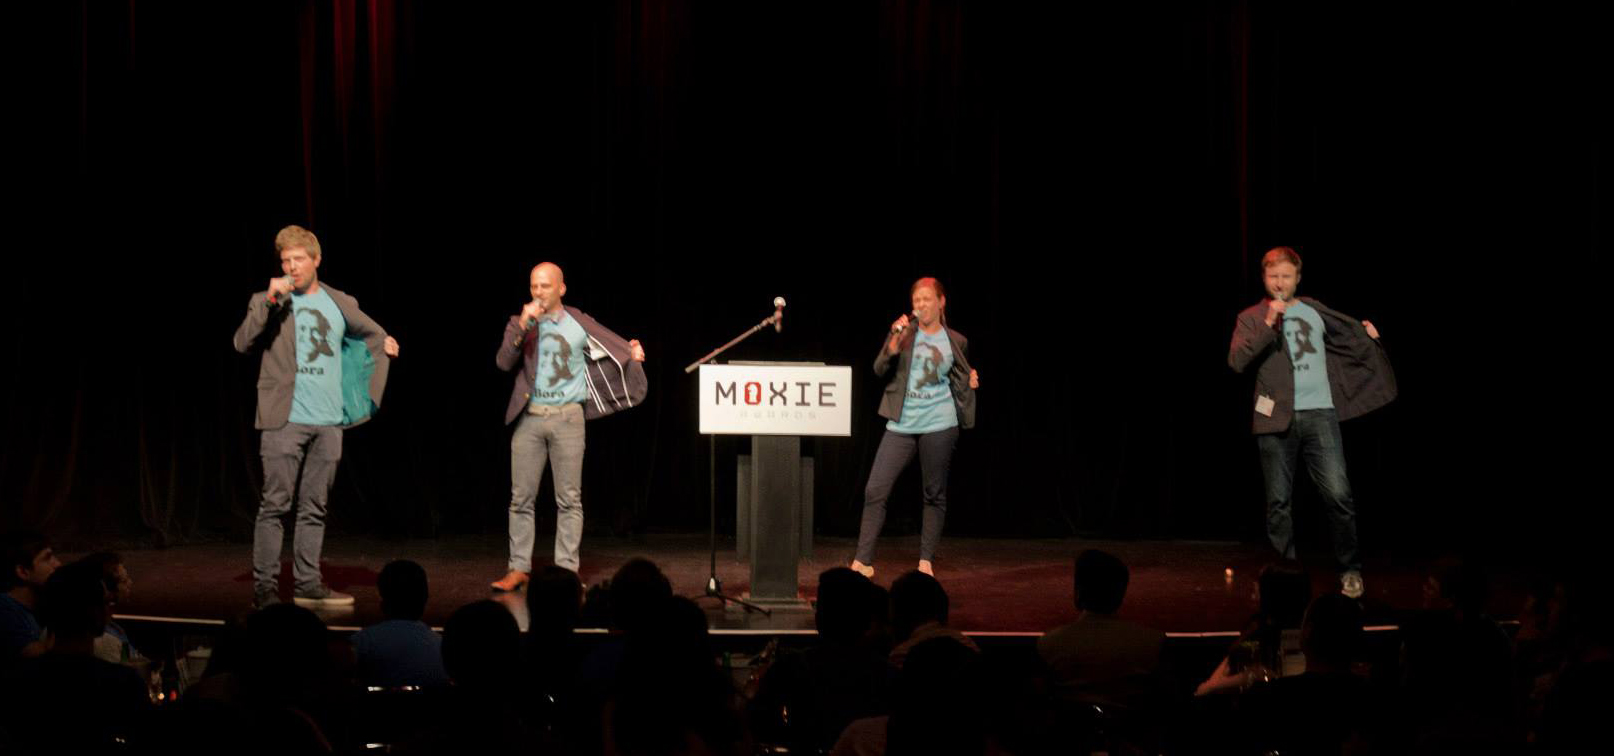 The B.O.B Crew was honored to MC the  2013 Moxie Awards .